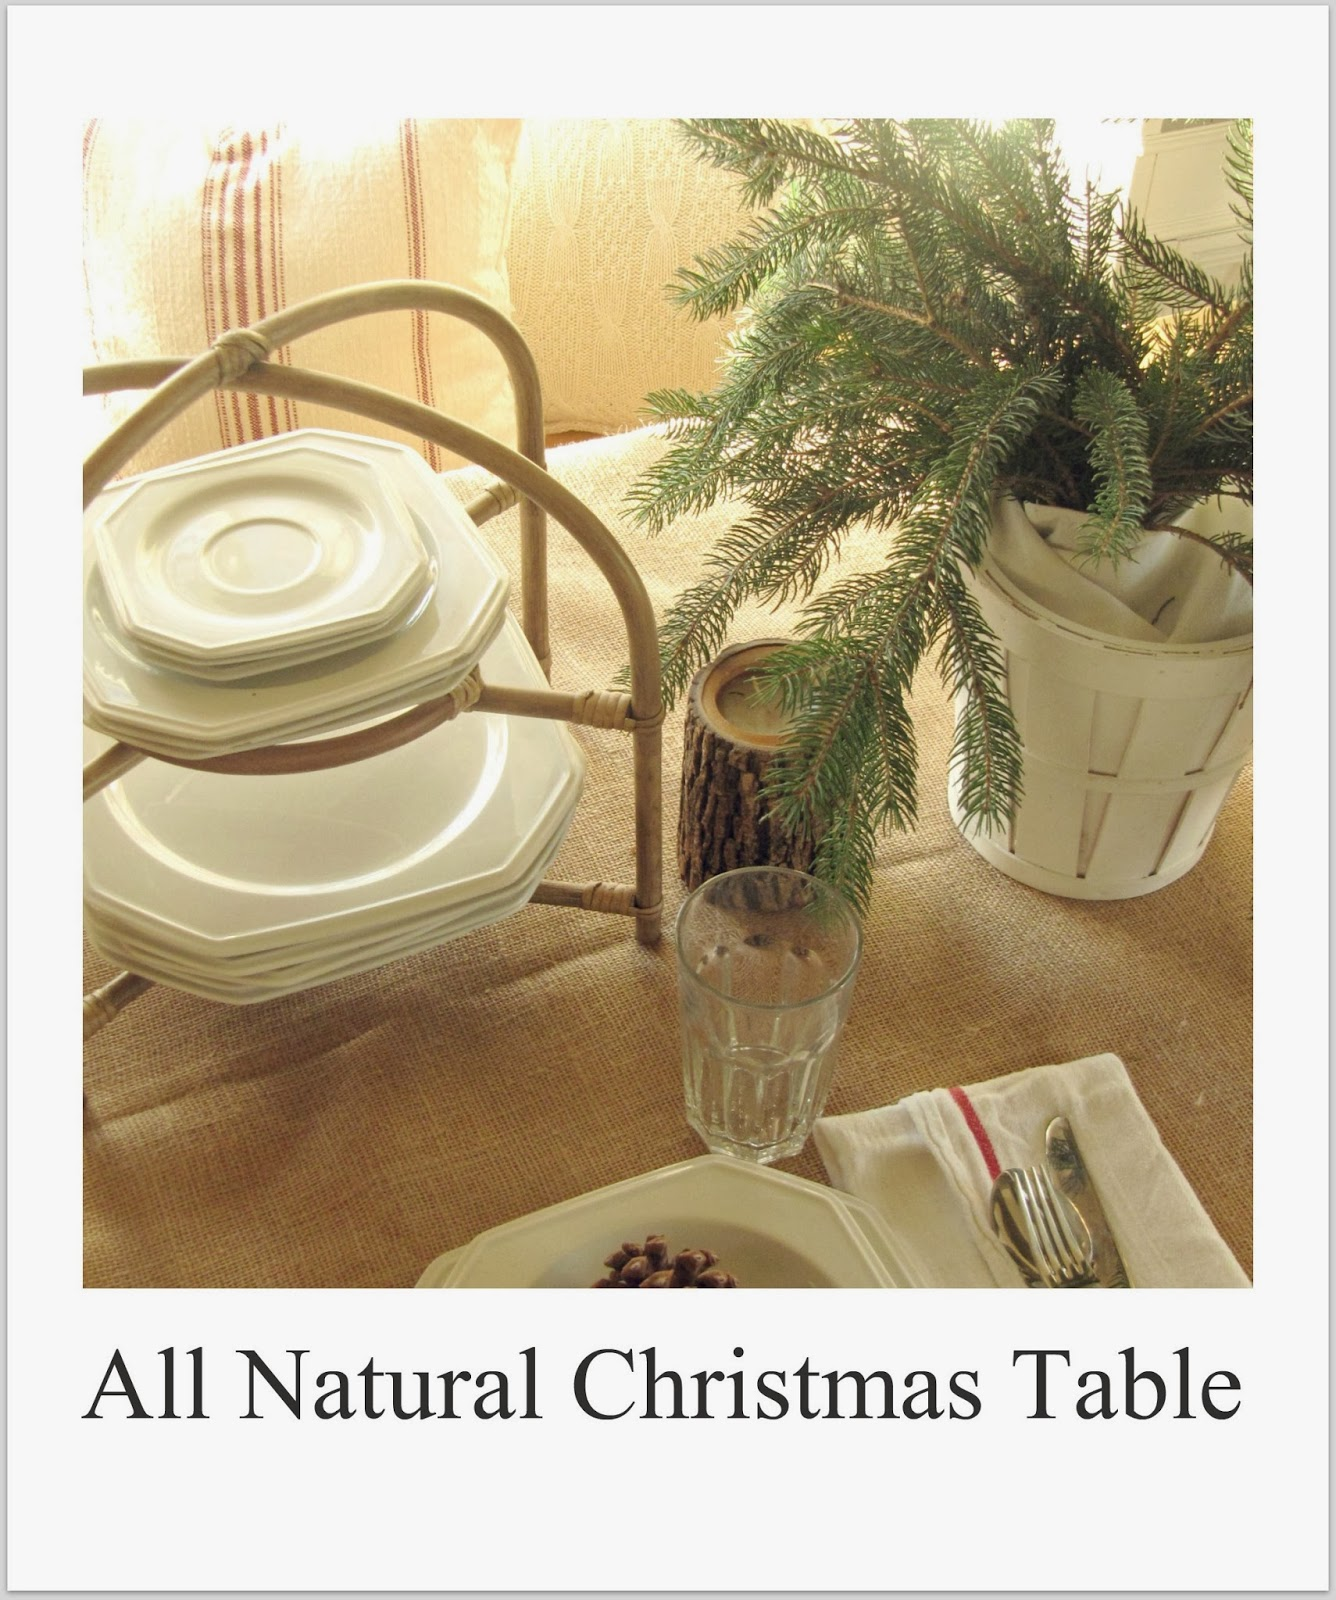 http://thewickerhouse.blogspot.com/2011/12/all-natural-christmas-table.html